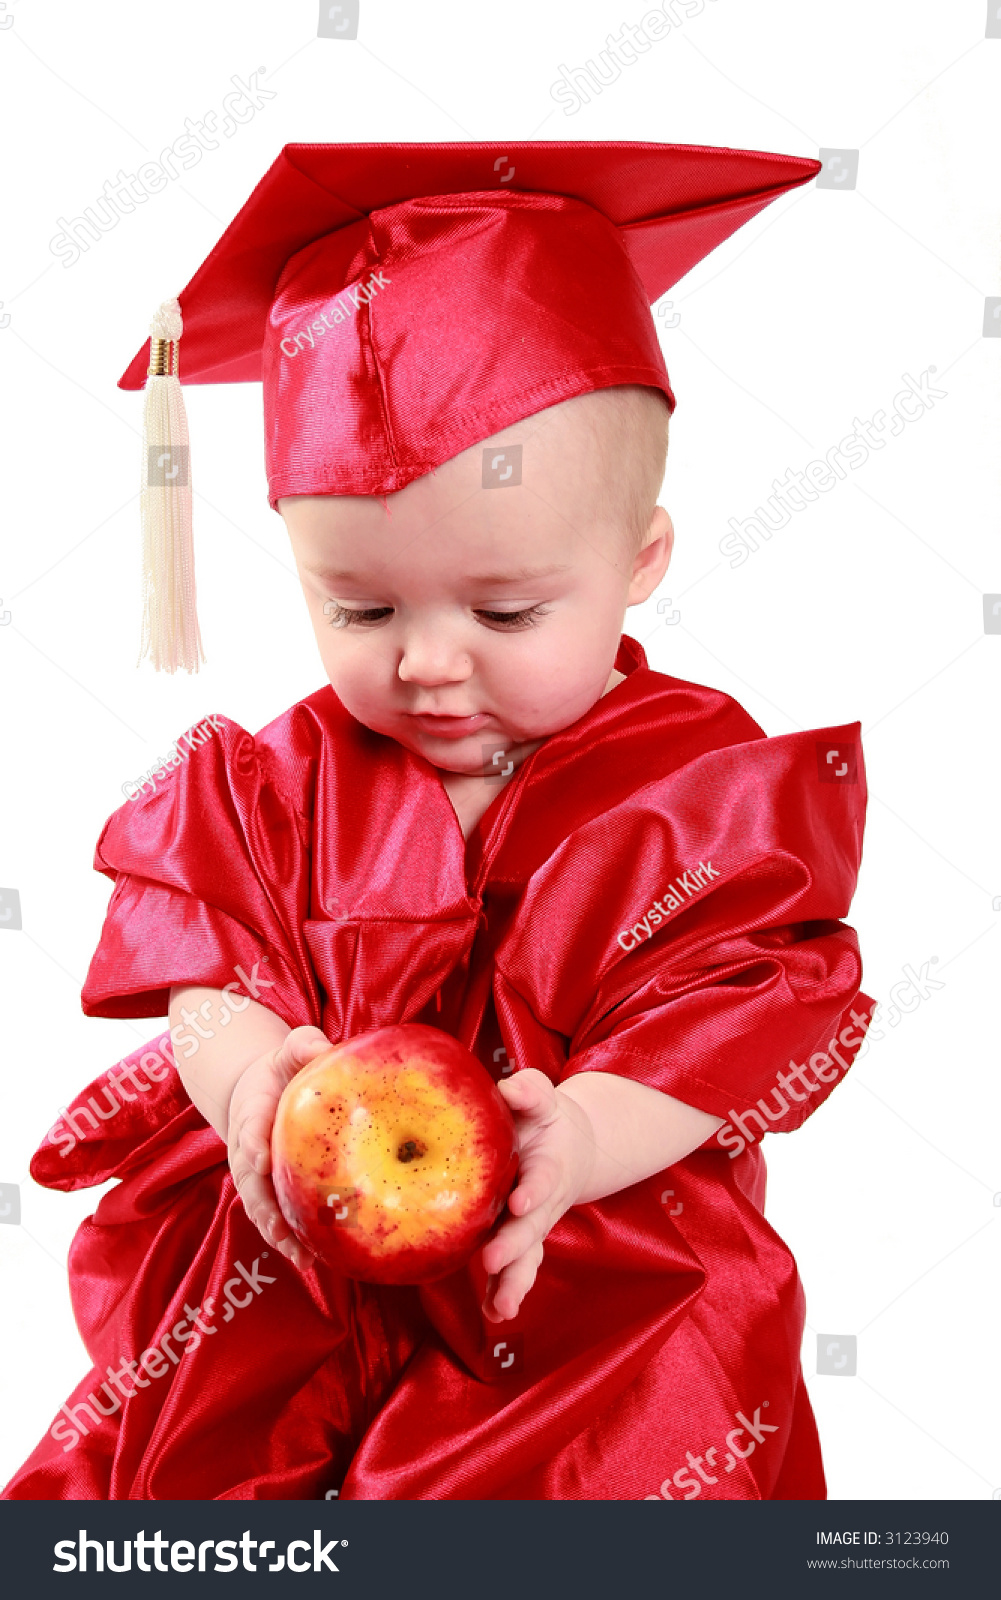 Adorable Baby Red Cap Gown Stock Photo (Royalty Free) 3123940 ...